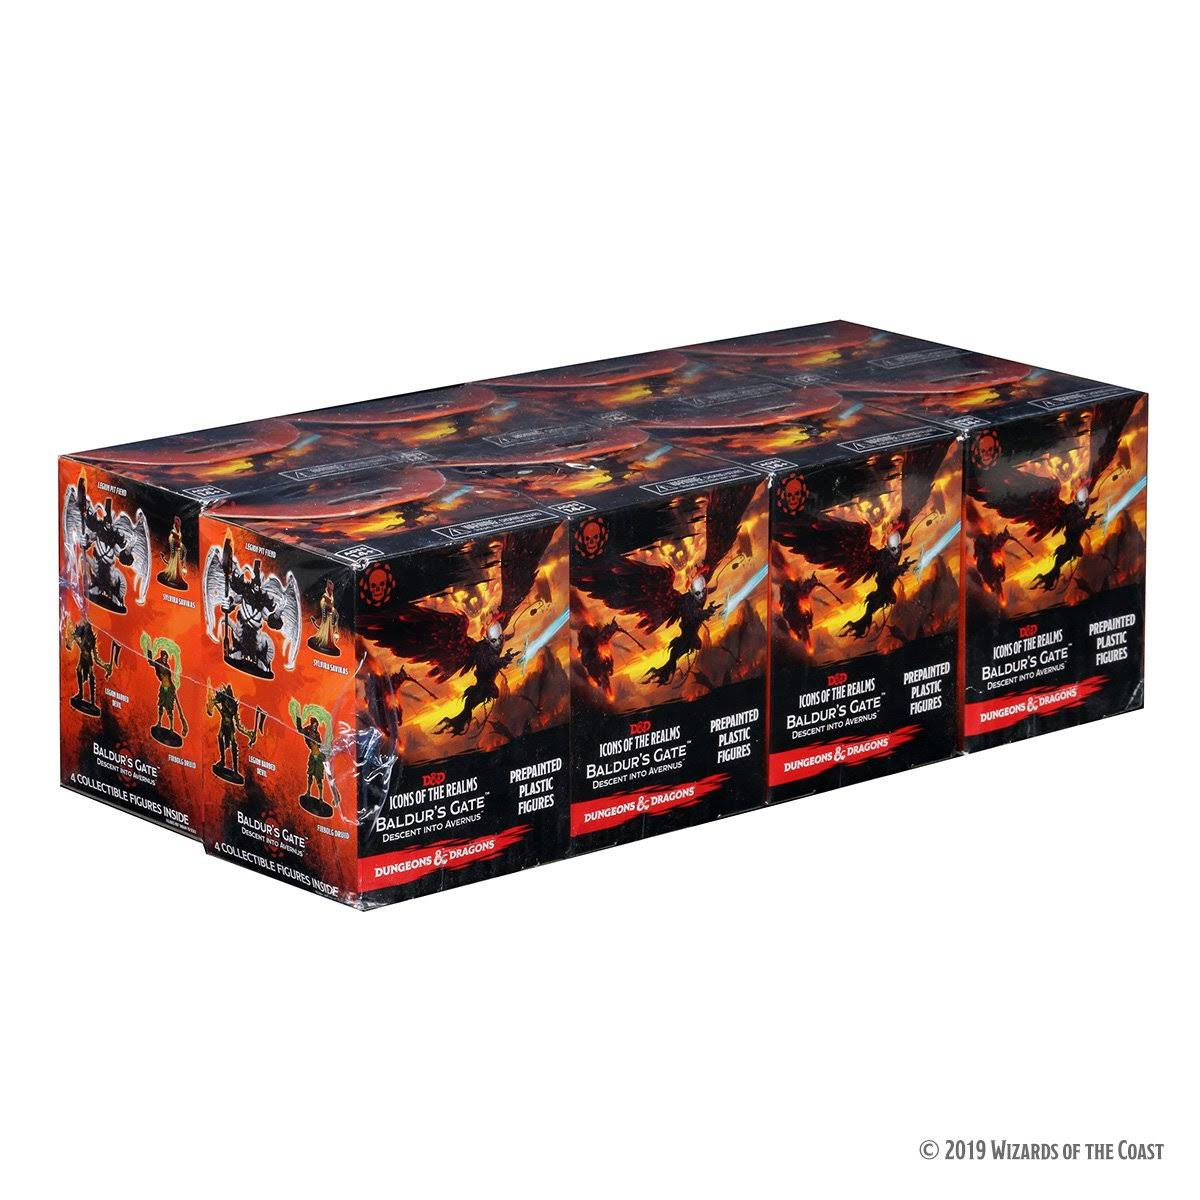 Dungeons & Dragons Miniatures: Icons of The Realms - Baldur's Gate Descent Into Avernus Booster (8ct) Brick